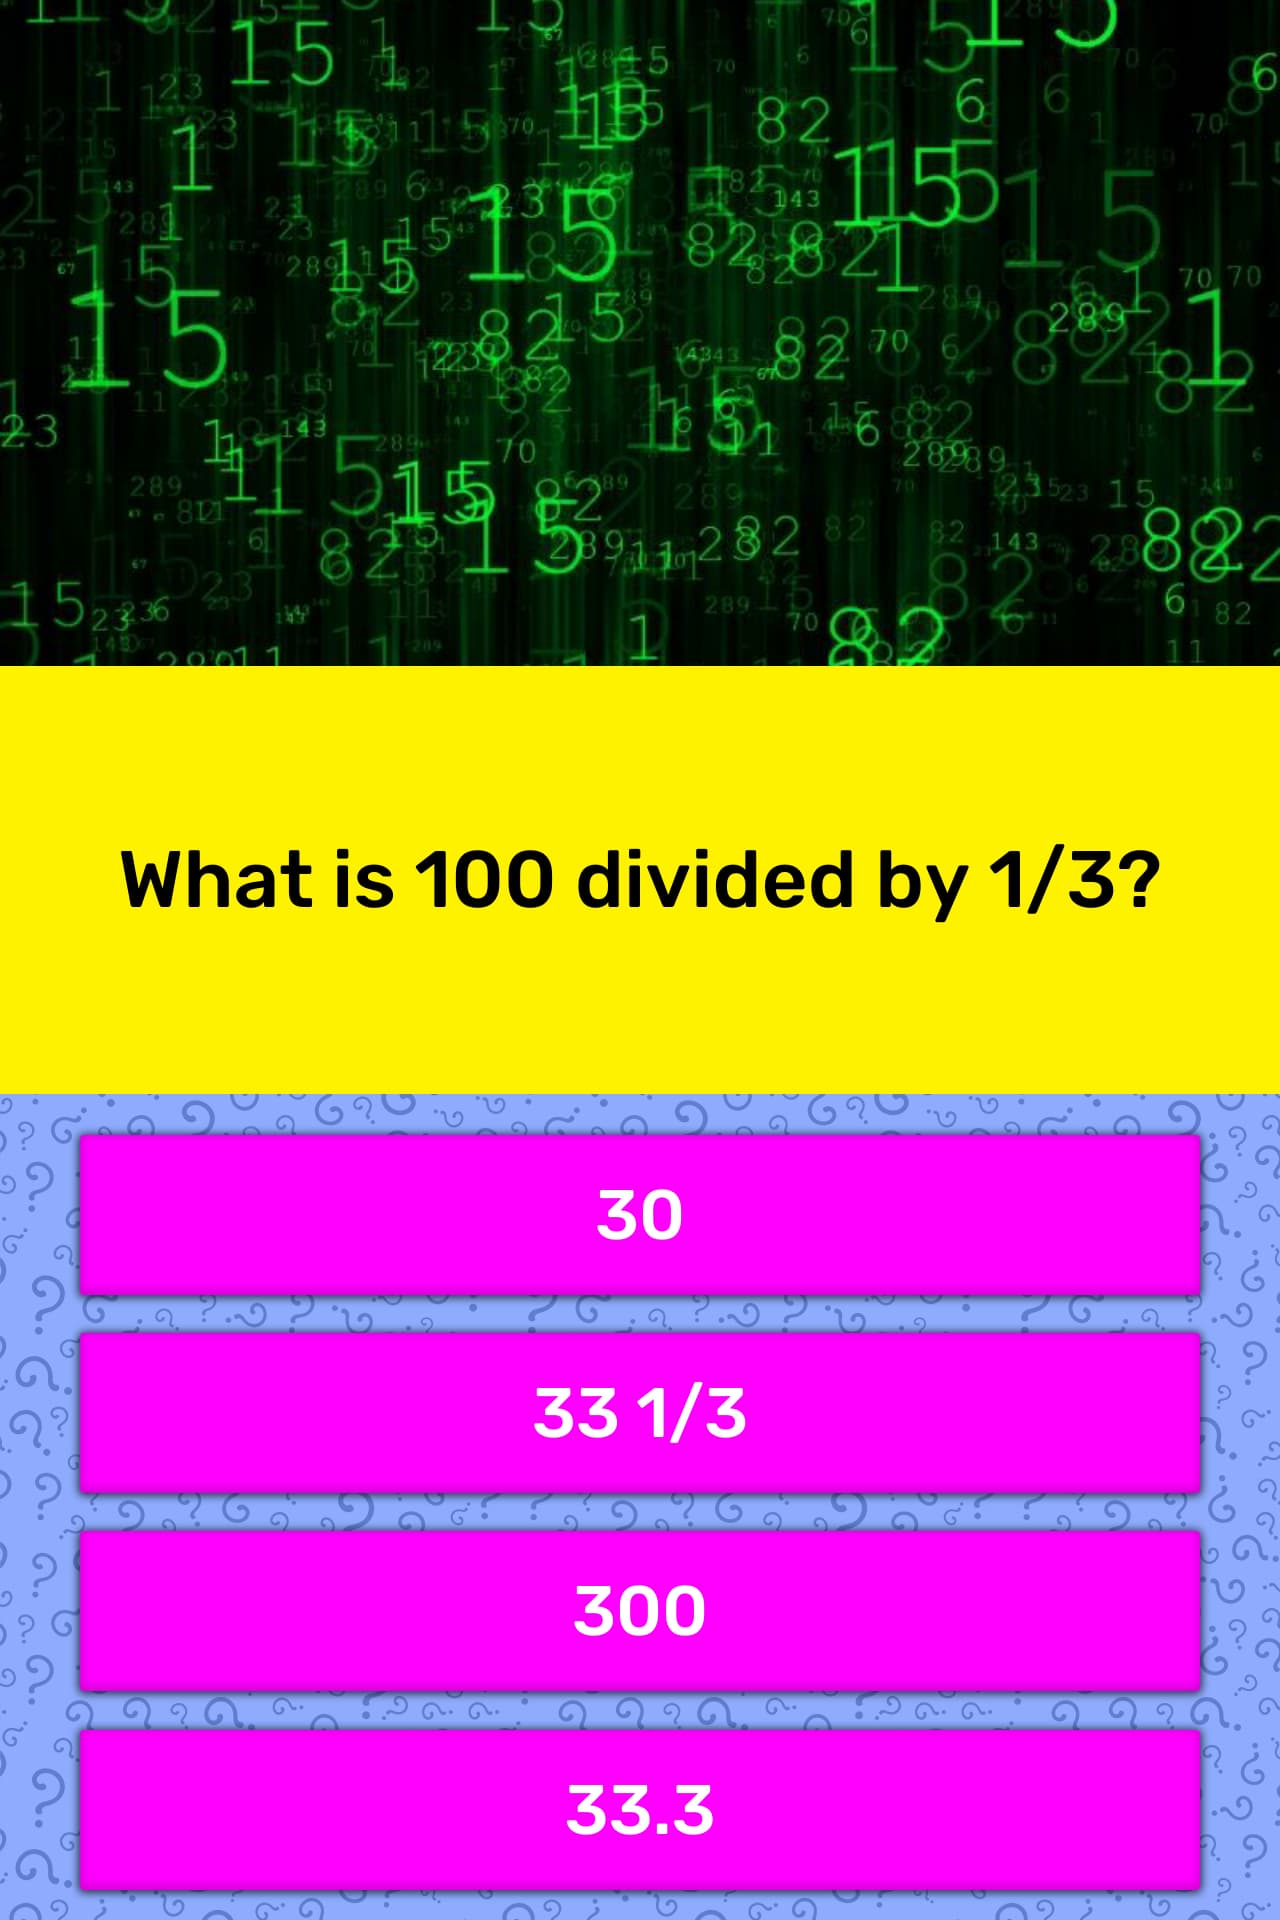 100 divided by 6